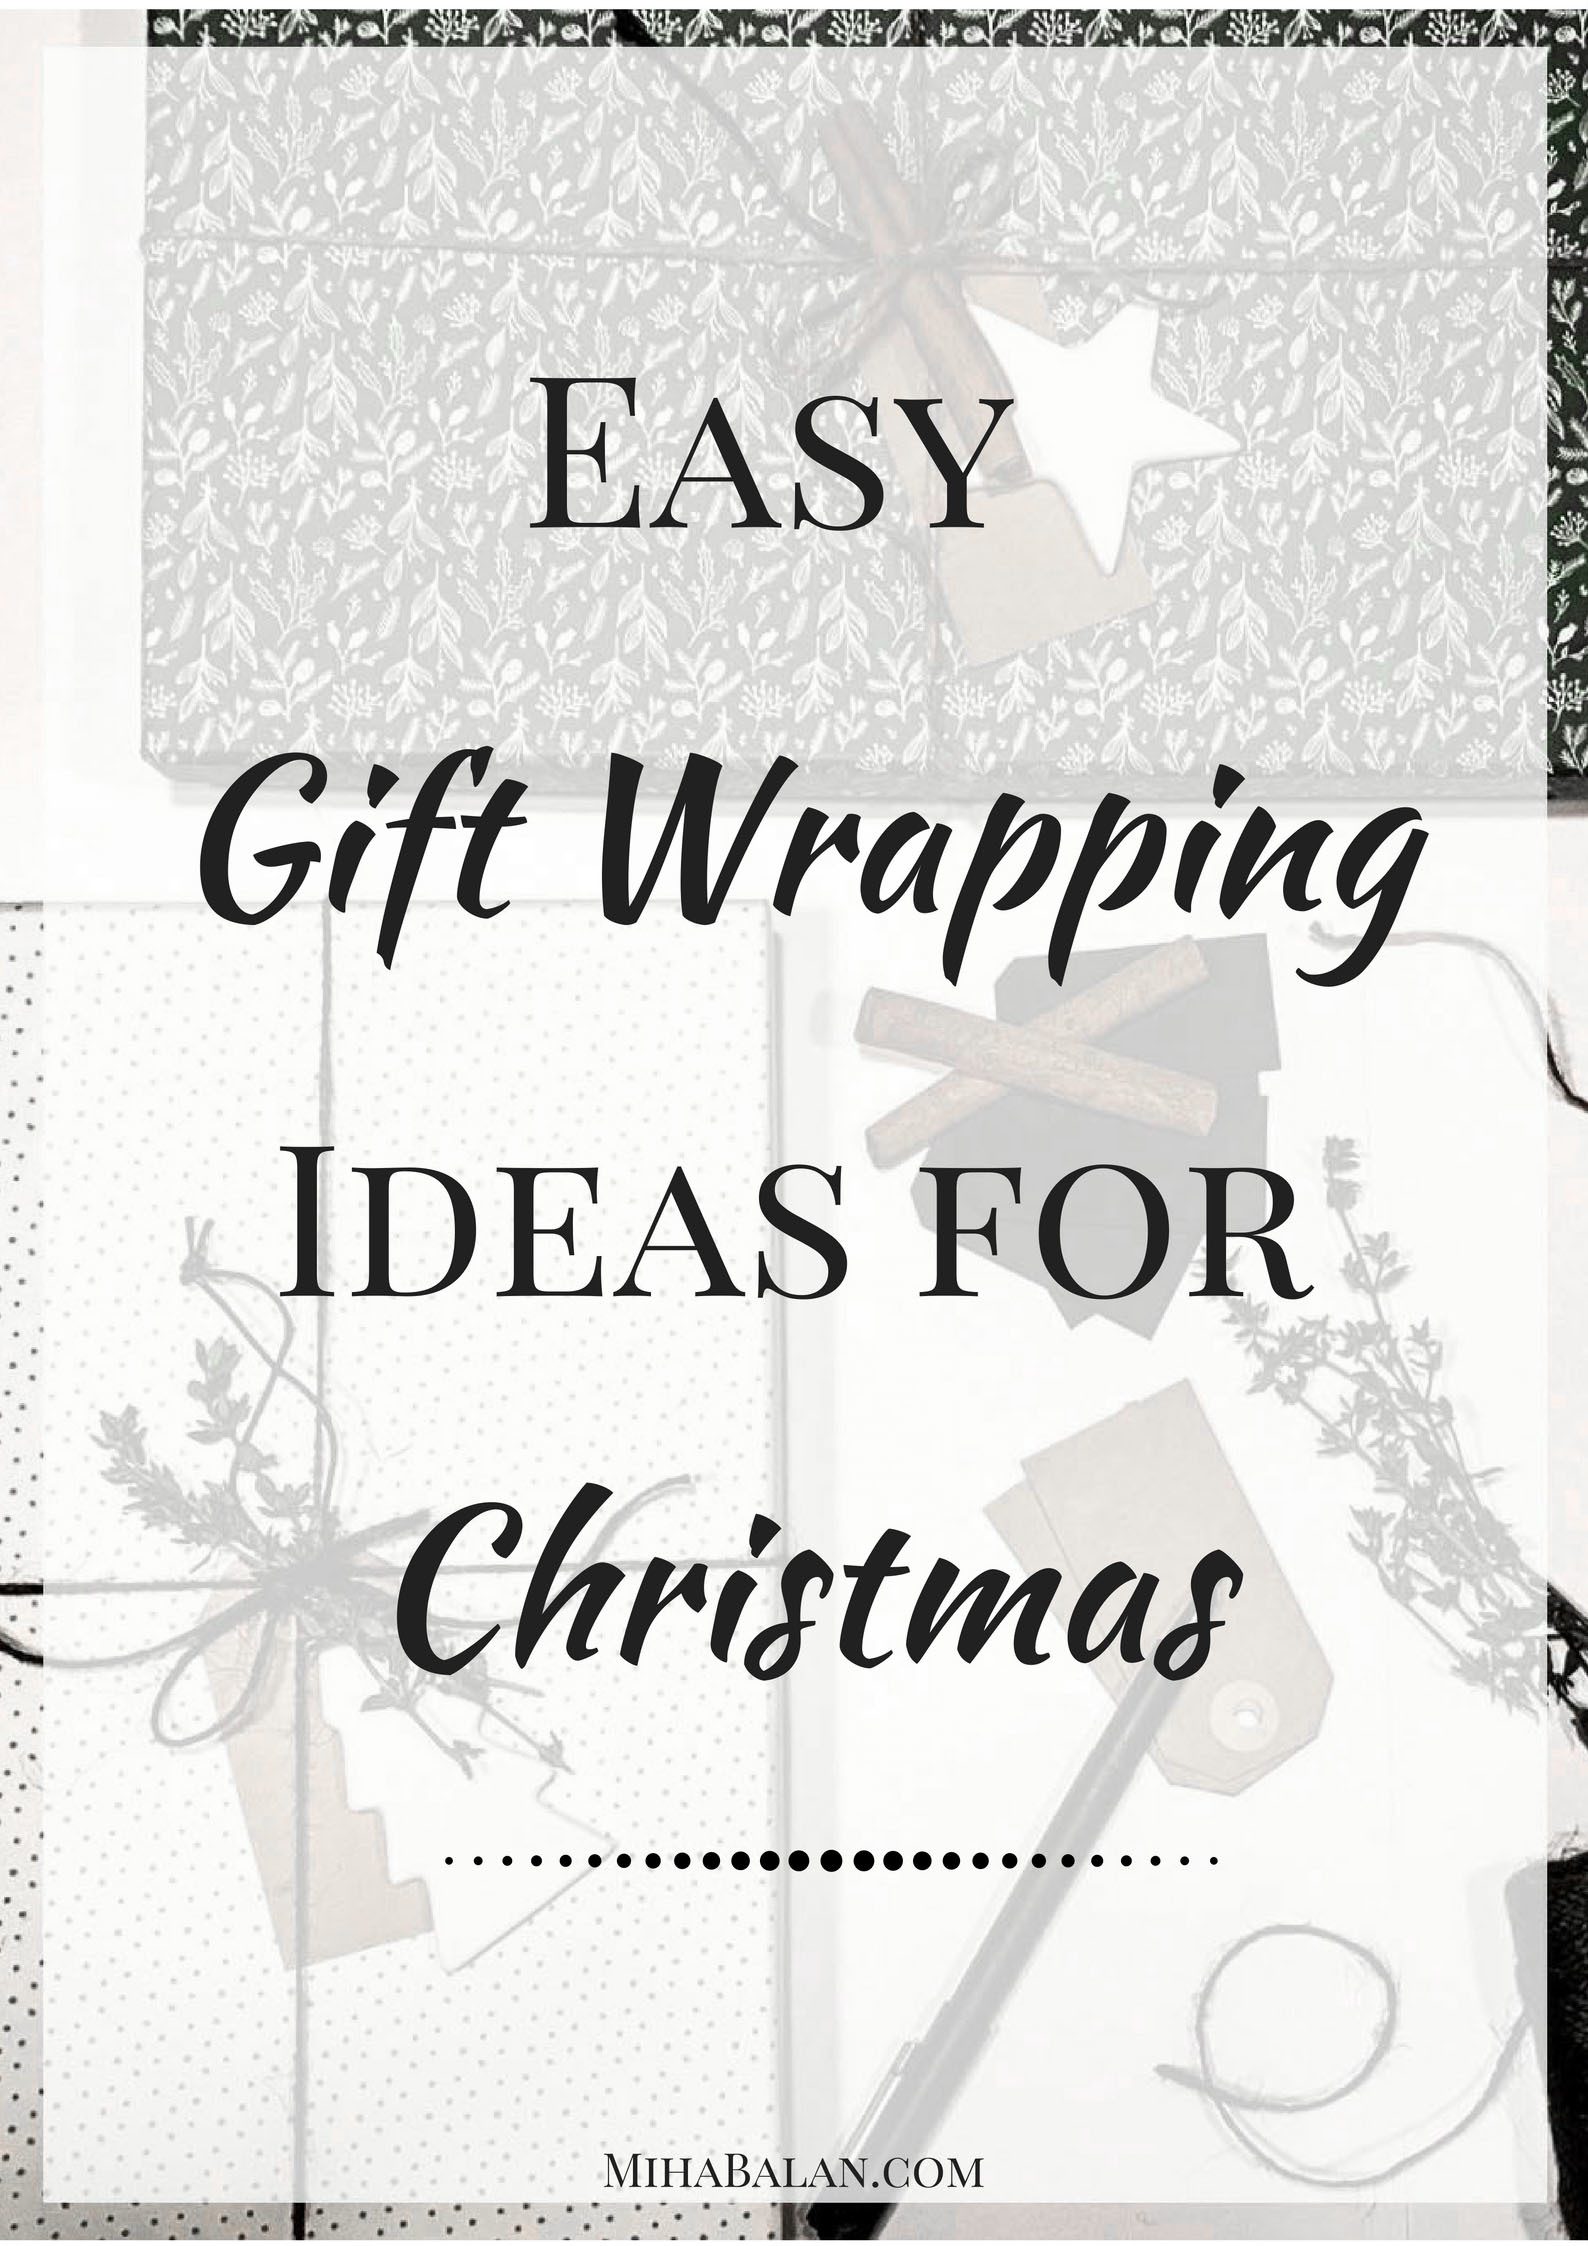 Easy Gift Wrapping Ideas For Christmas copy